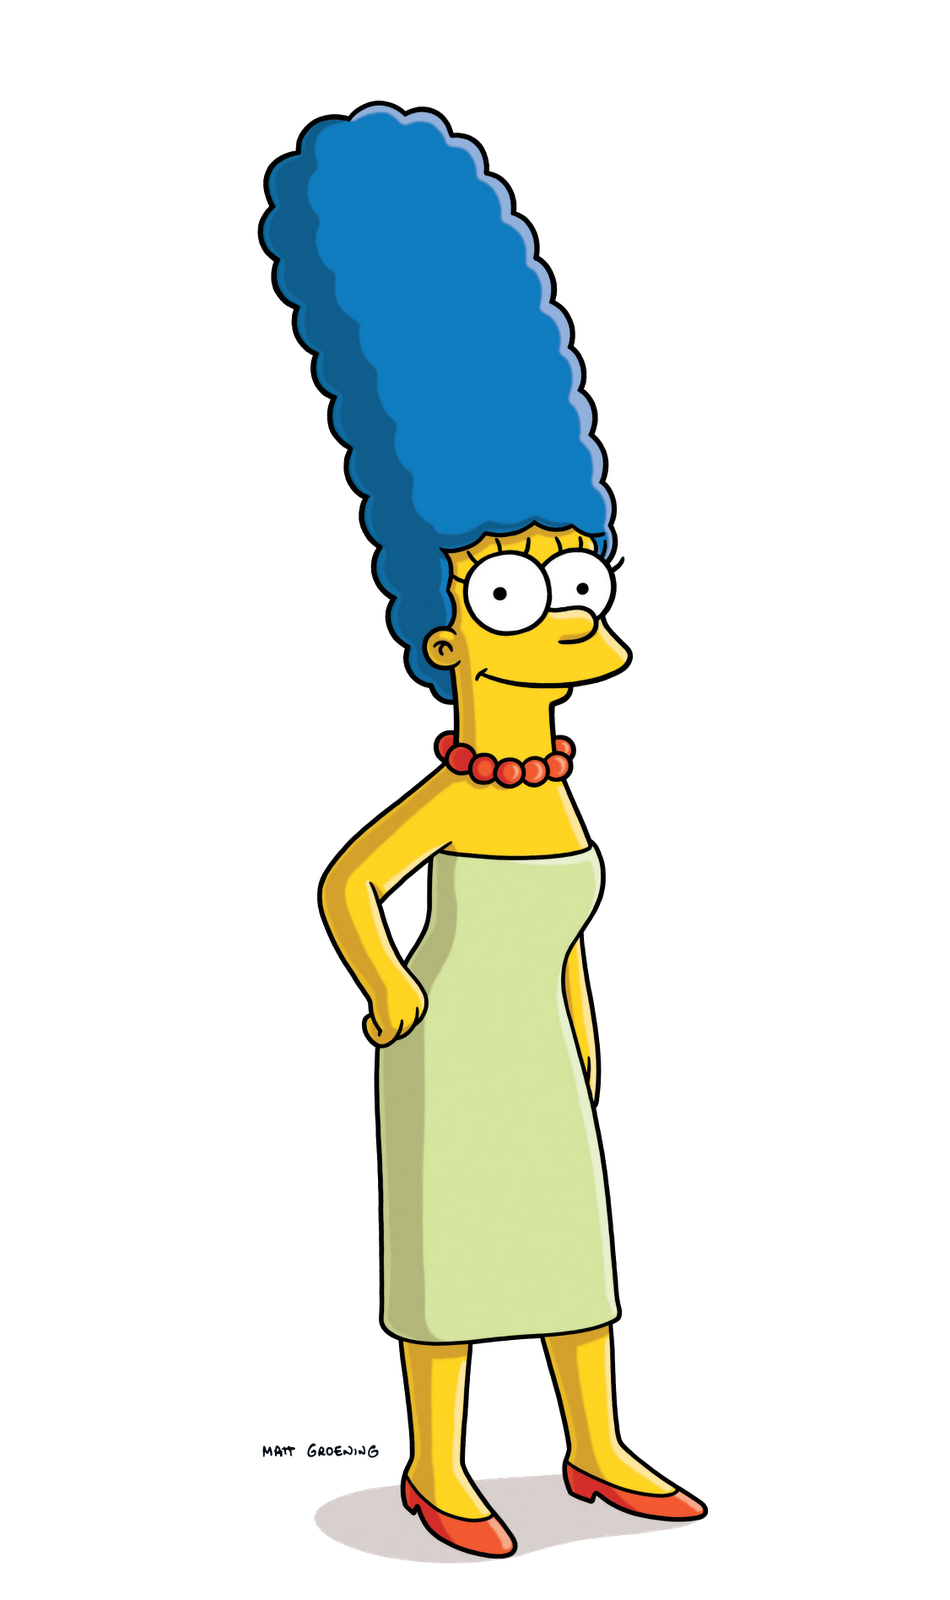 simpsons characters png